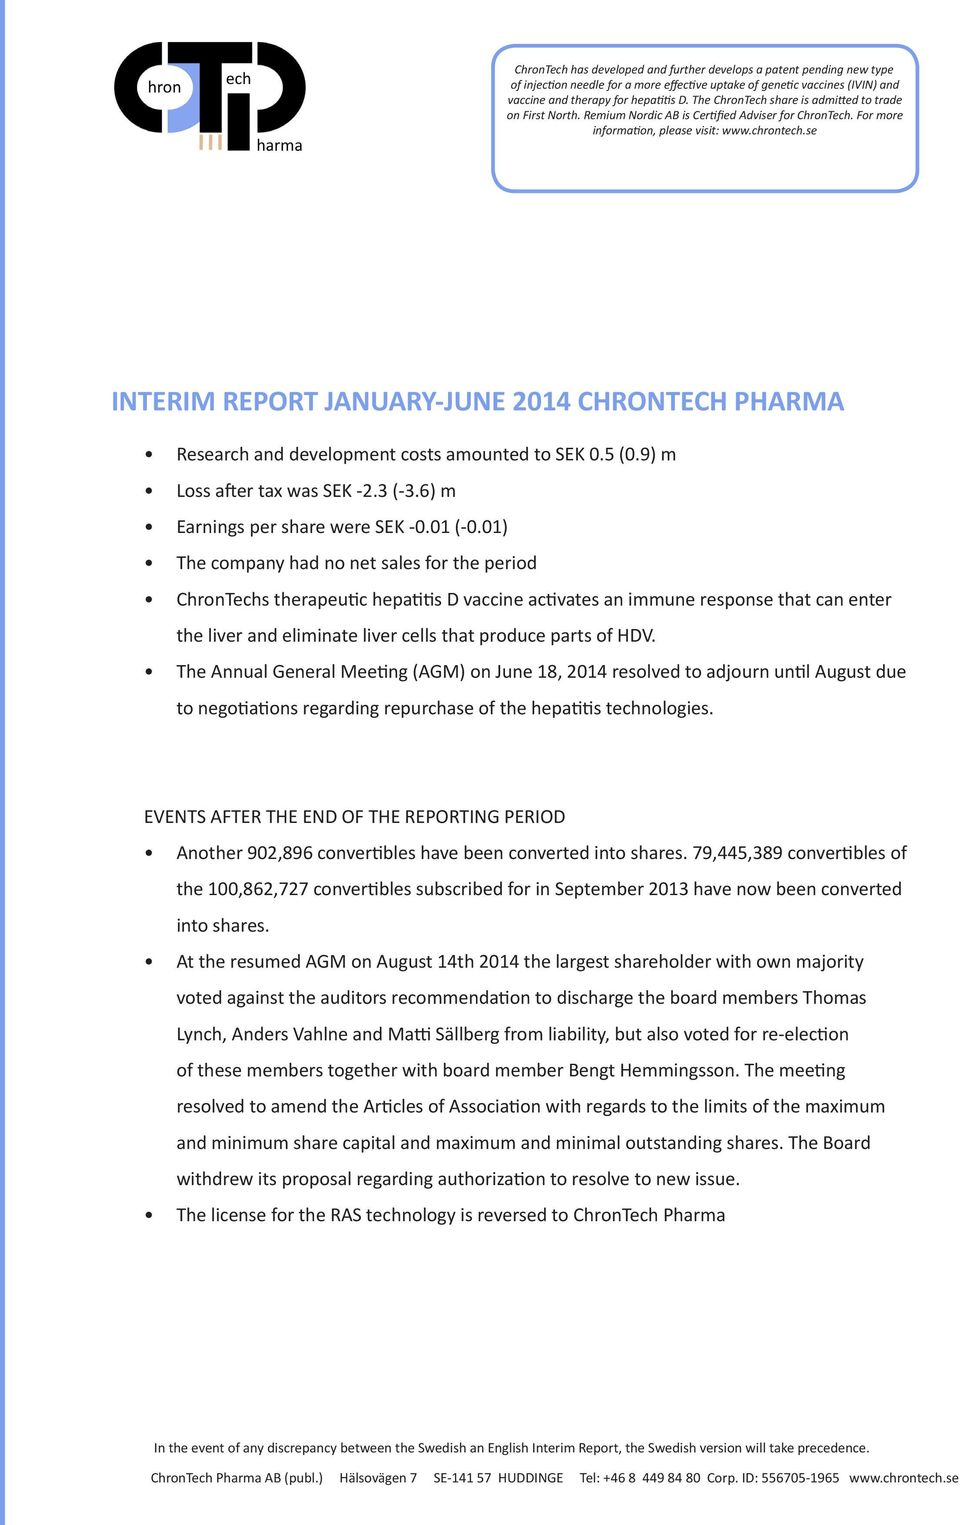 se INTERIM REPORT JANUARY-JUNE 2014 CHRONTECH PHARMA Research and development costs amounted to SEK 0.5 (0.9) m Loss after tax was SEK -2.3 (-3.6) m Earnings per share were SEK -0.01 (-0.